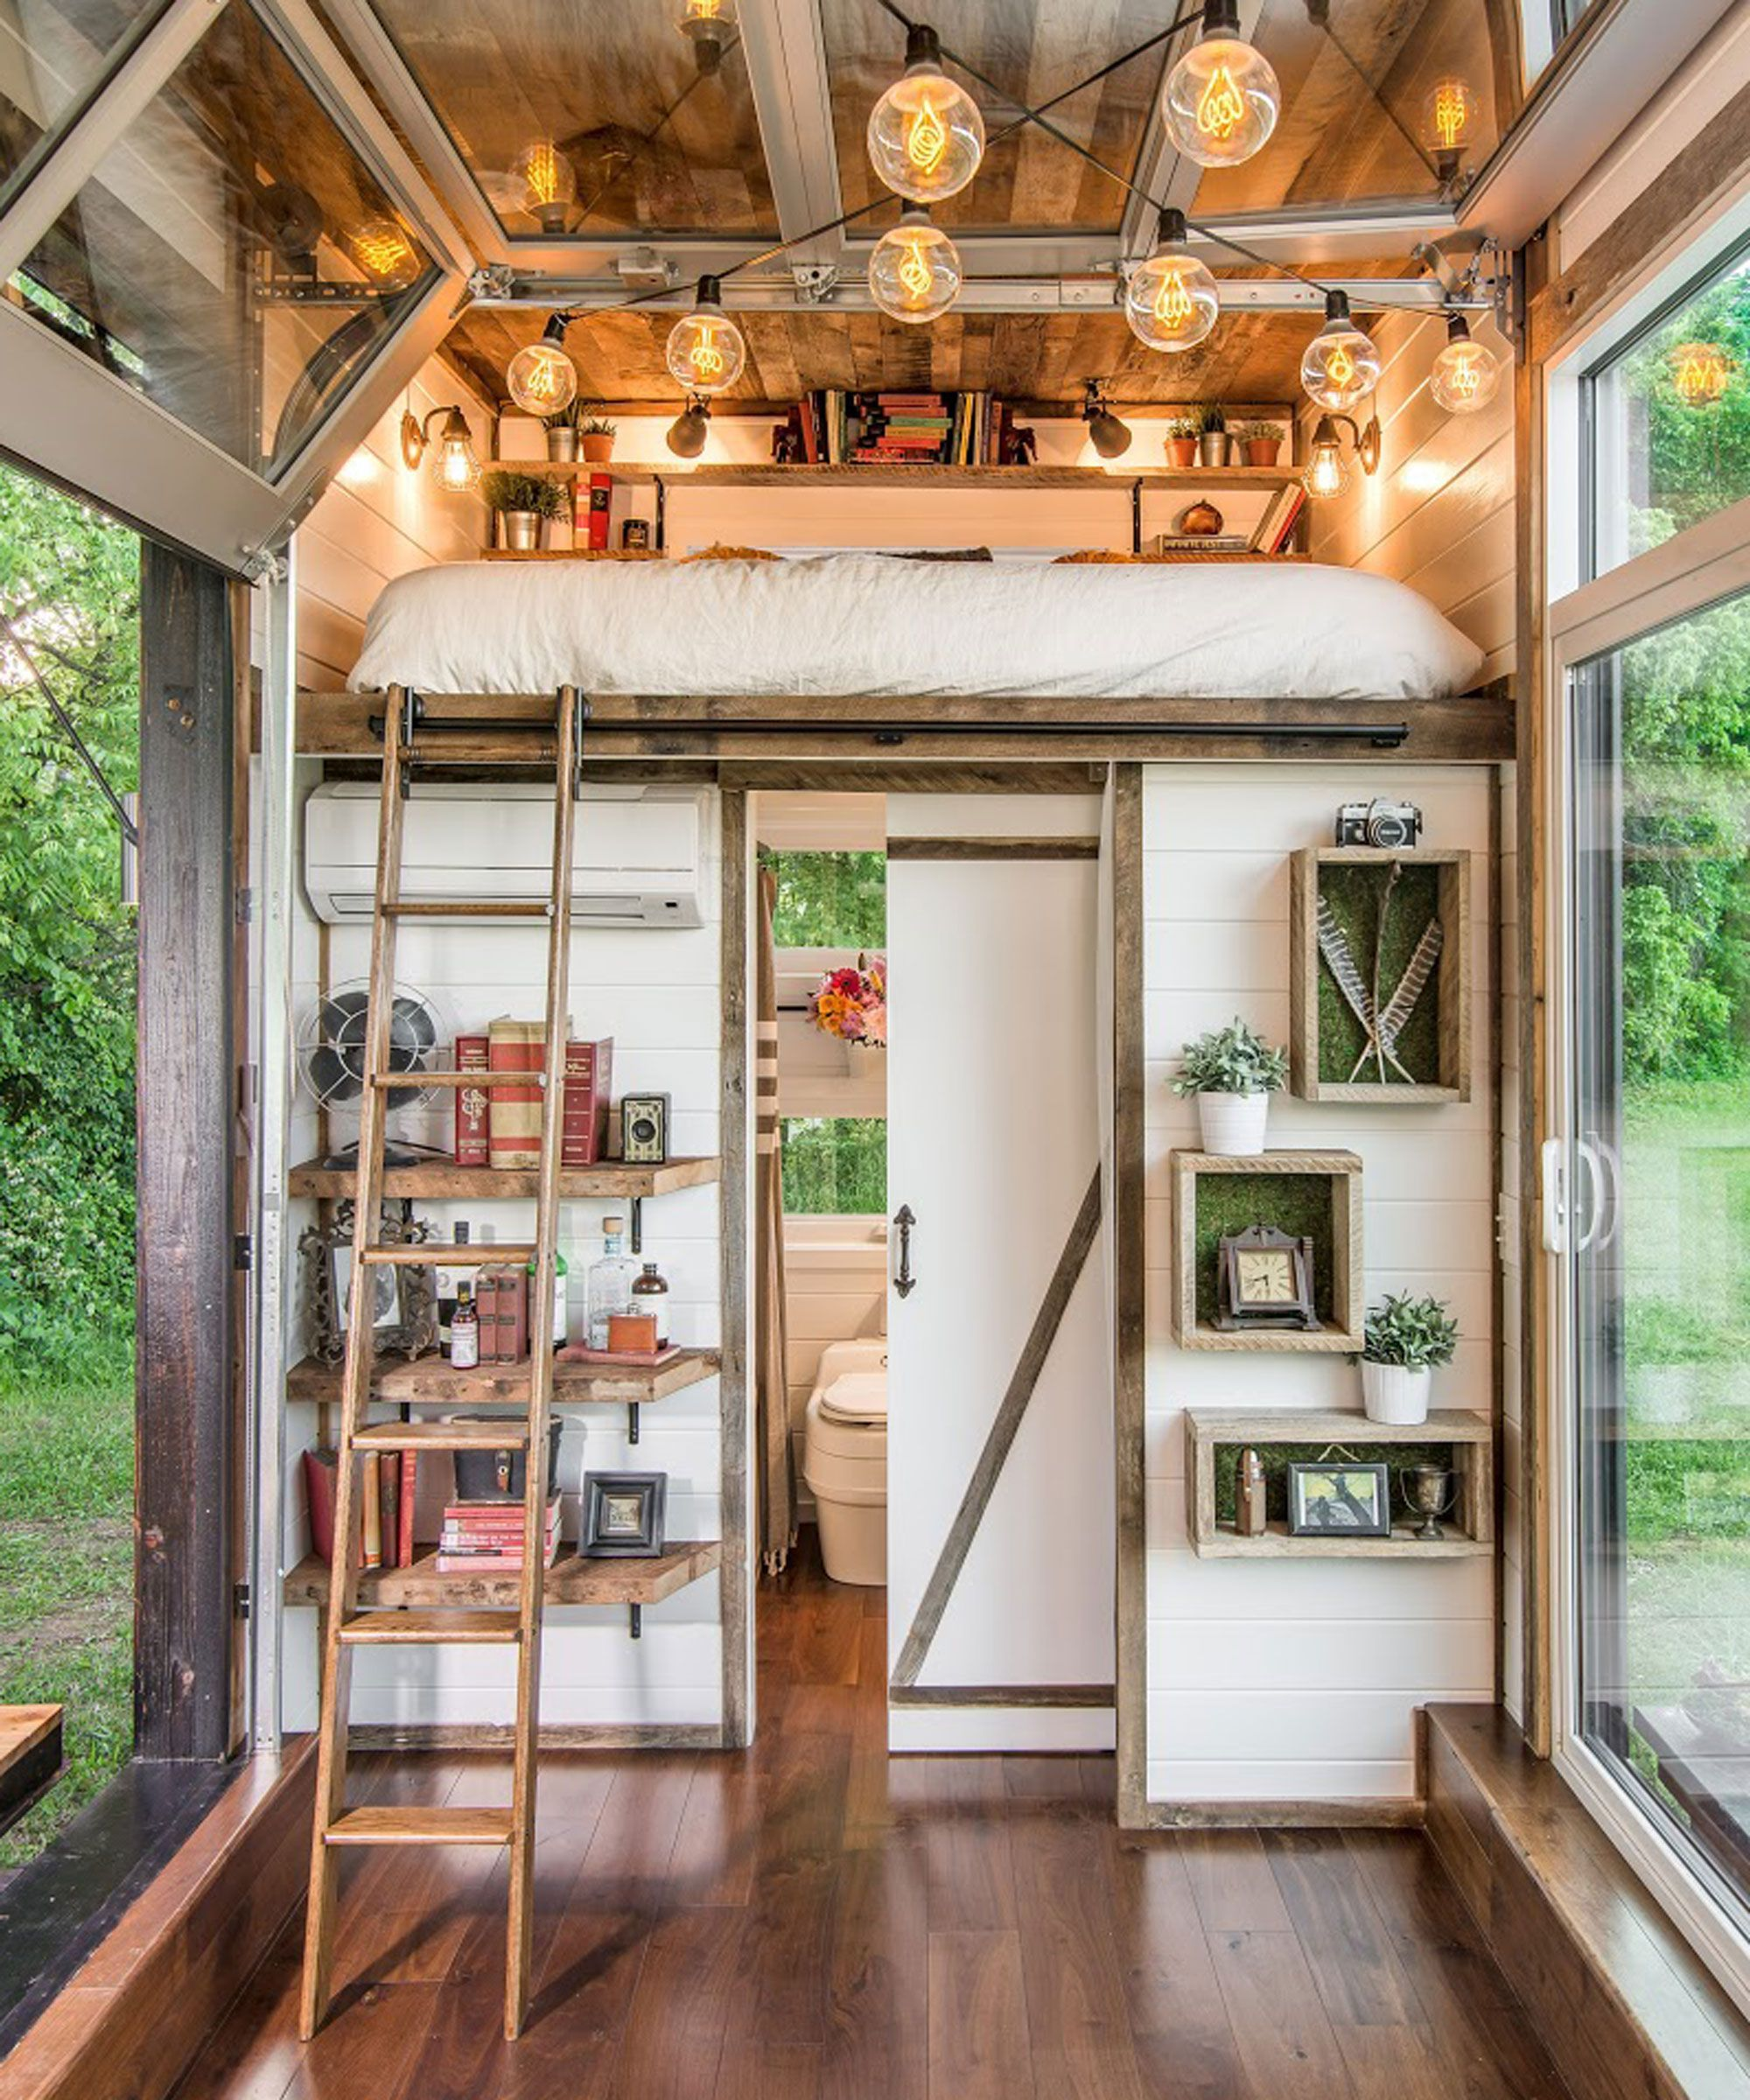 New Tiny House Interiors: This Gorgeous Tiny House Is Proof That Size Doesn't Matter